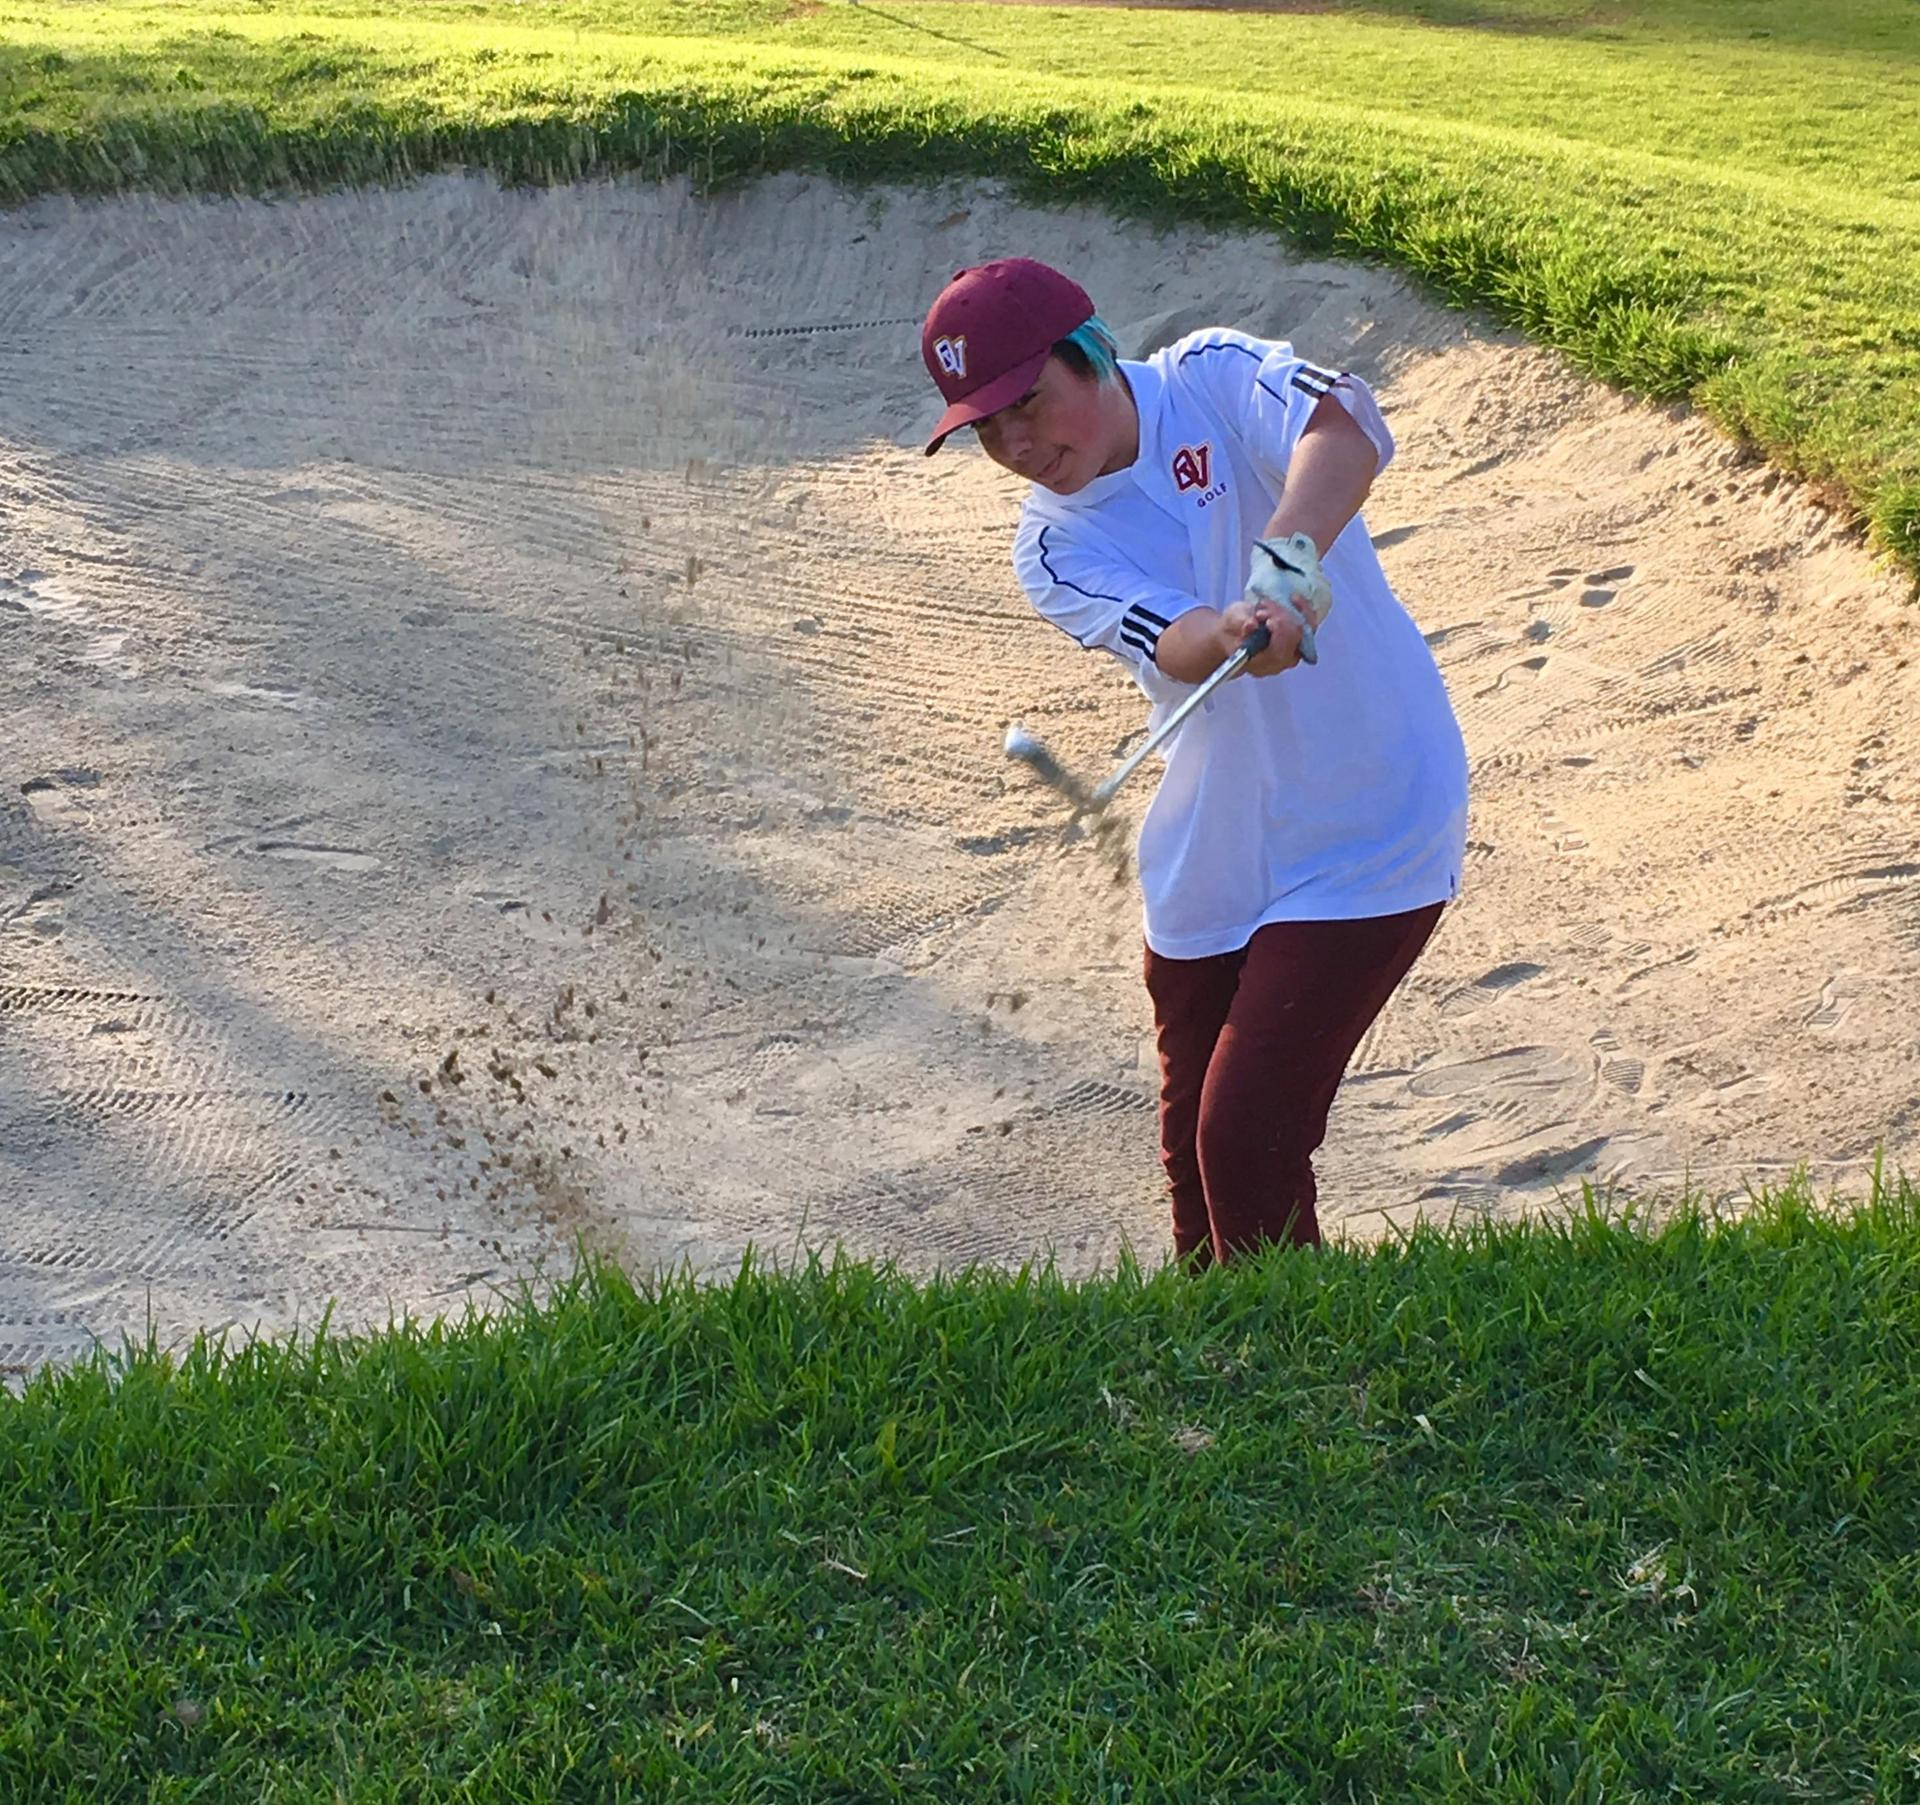 From the sand trap